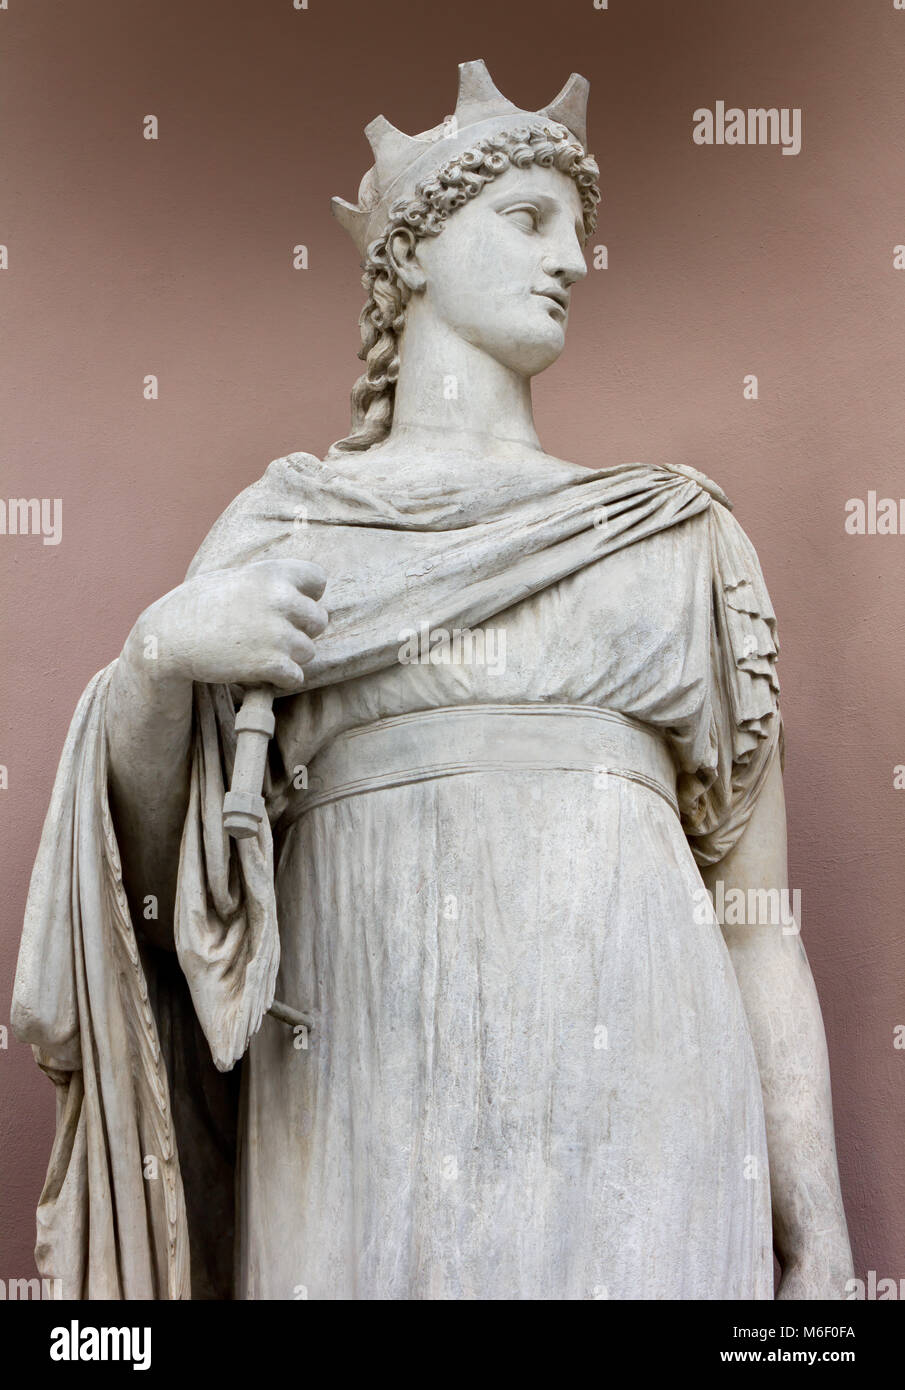 Neoclassic marble statue in its niche - Stock Image